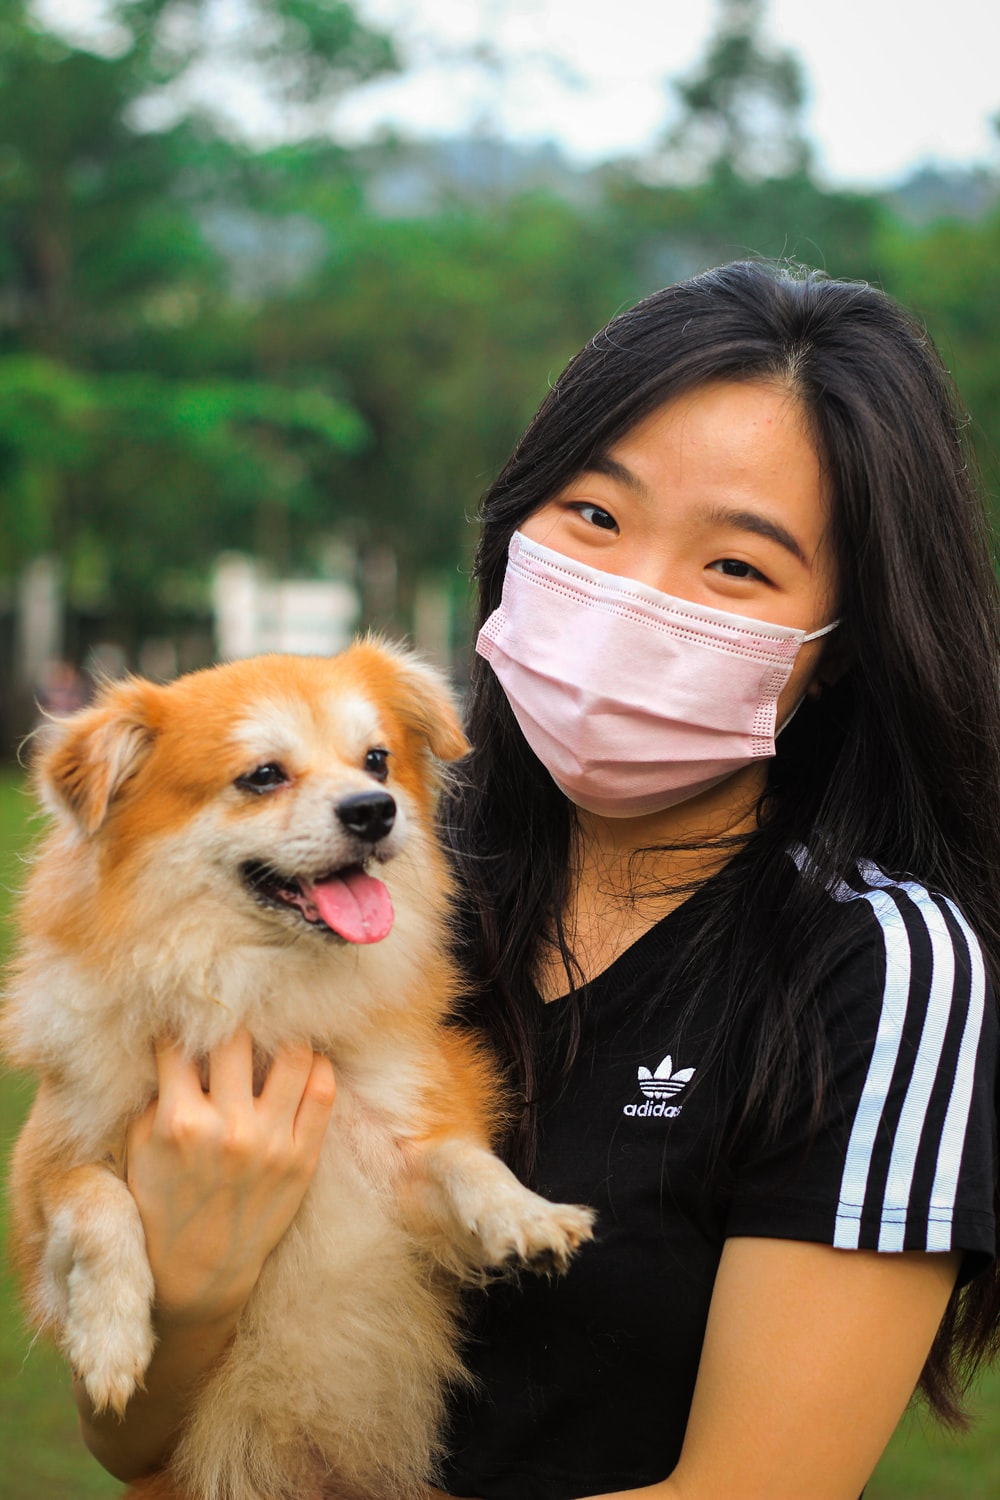 woman in black and white striped shirt holding brown pomeranian